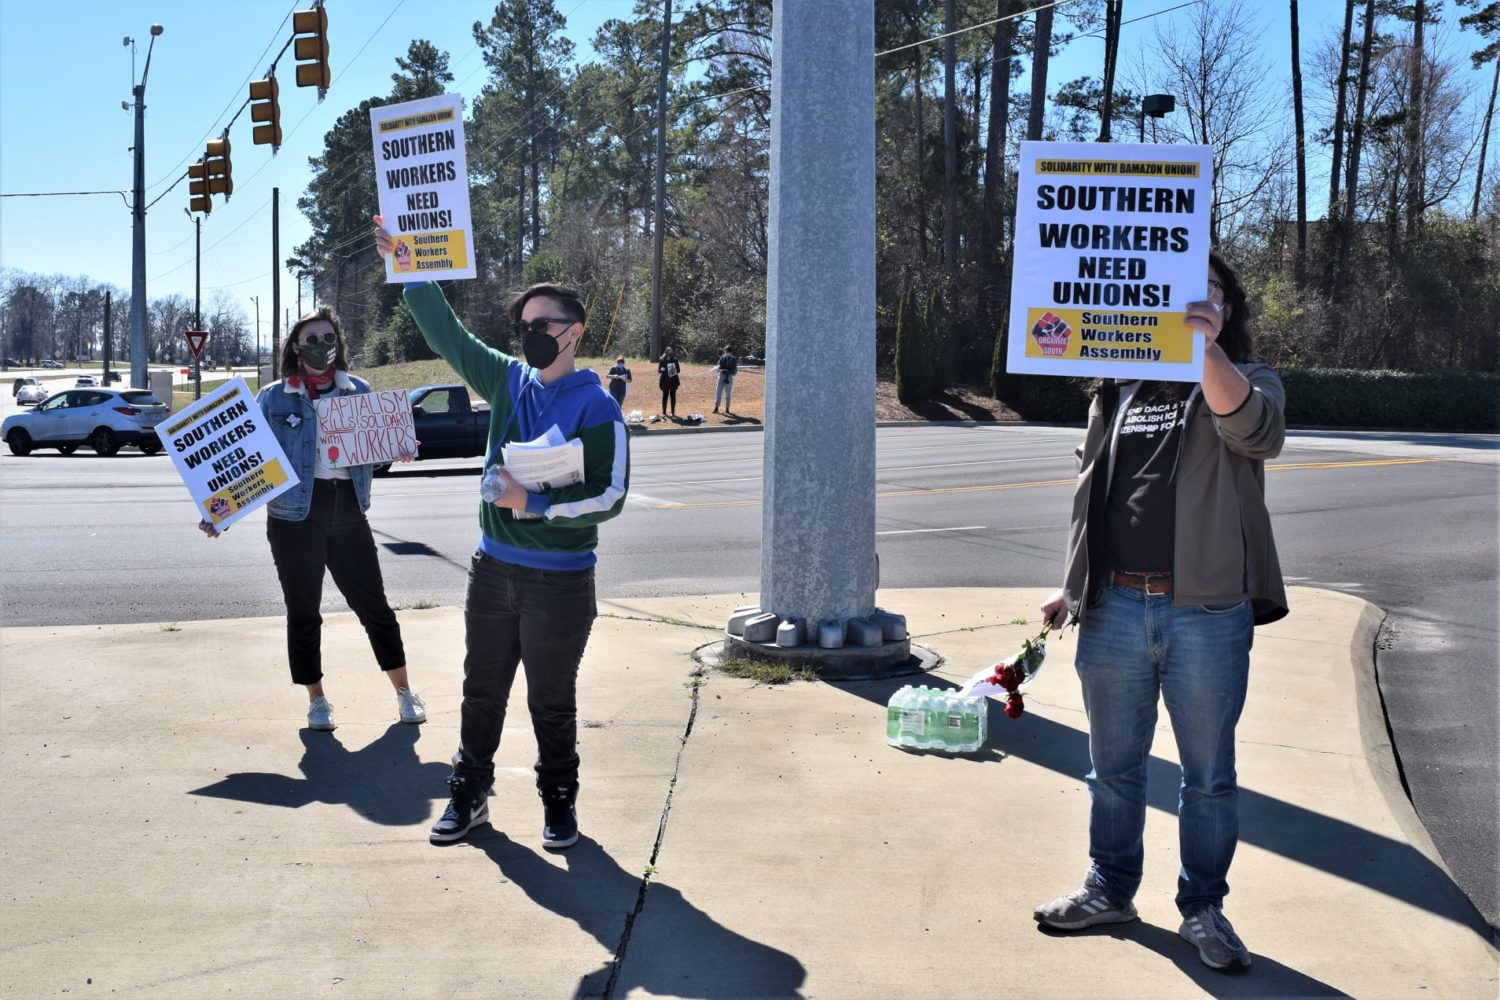 Montgomery-Alabama-Amazon-workers-support-protest-022021-1, Black Workers Matter! Nationwide protests supporting Amazon workers in Alabama from the Bay to Harlem, National News & Views Photo Gallery